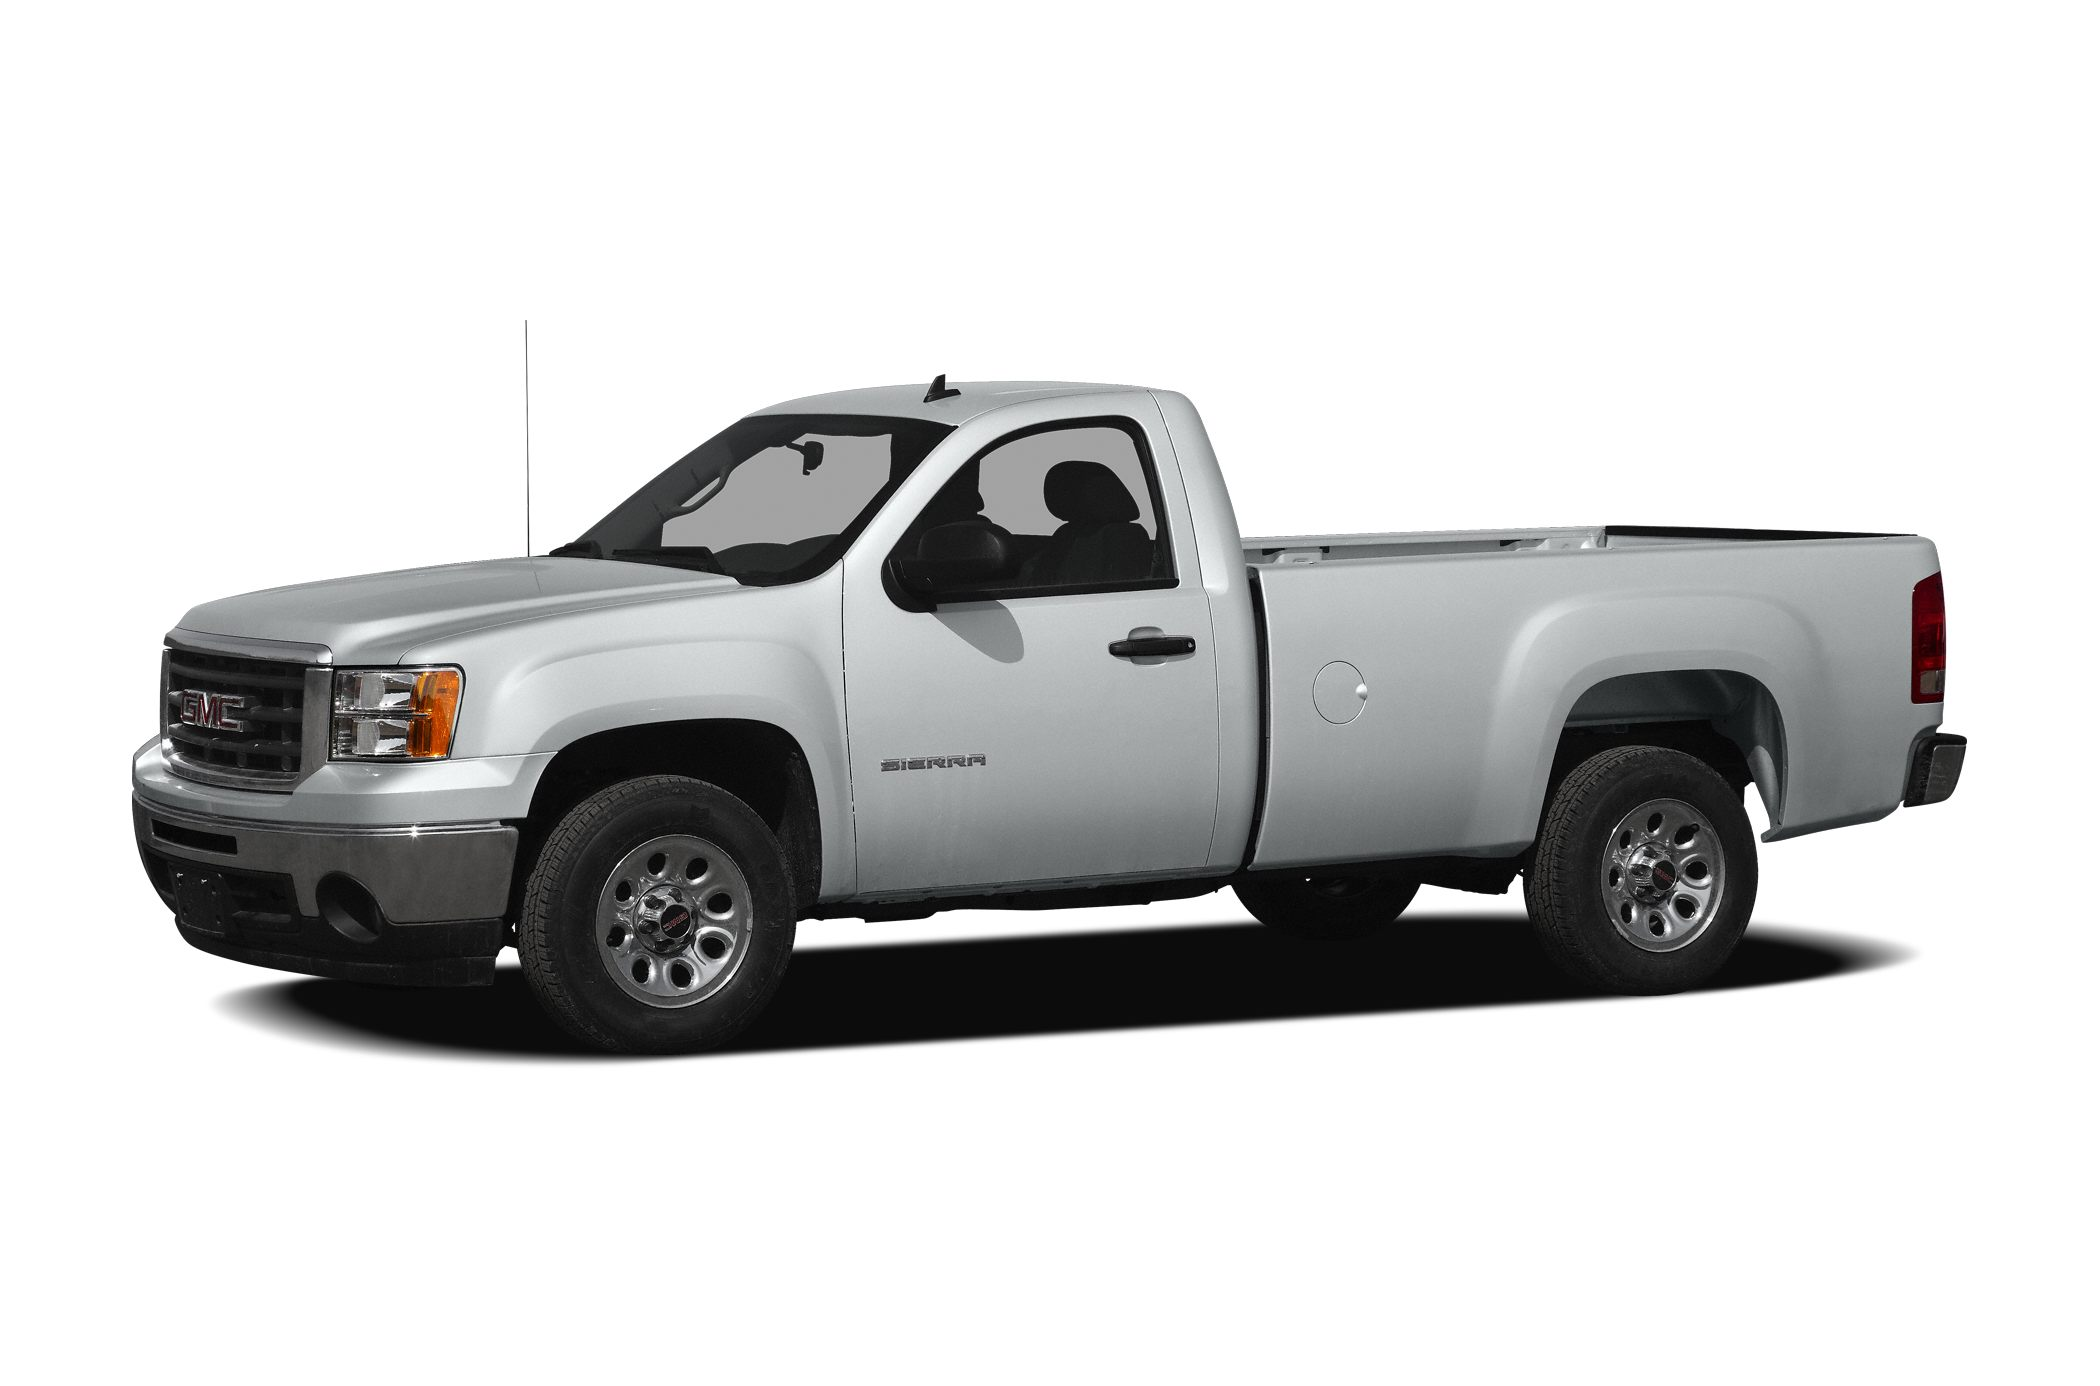 2011 GMC Sierra 1500 Work Truck Extended Cab Pickup for sale in Butler for $9,995 with 112,571 miles.